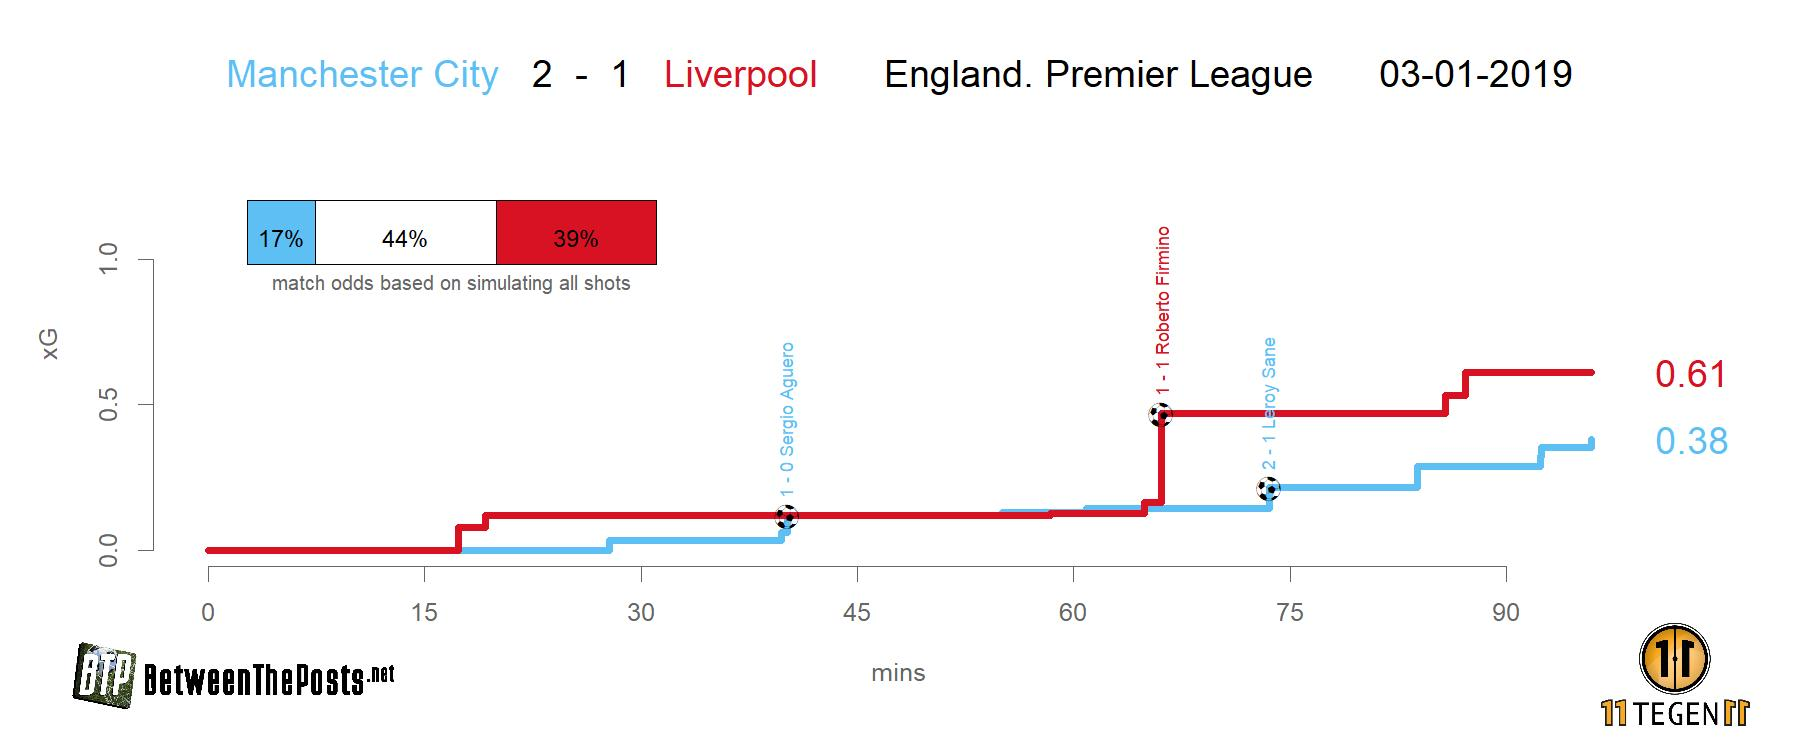 Expected goals plot Manchester City Liverpool 2-1 Premier League